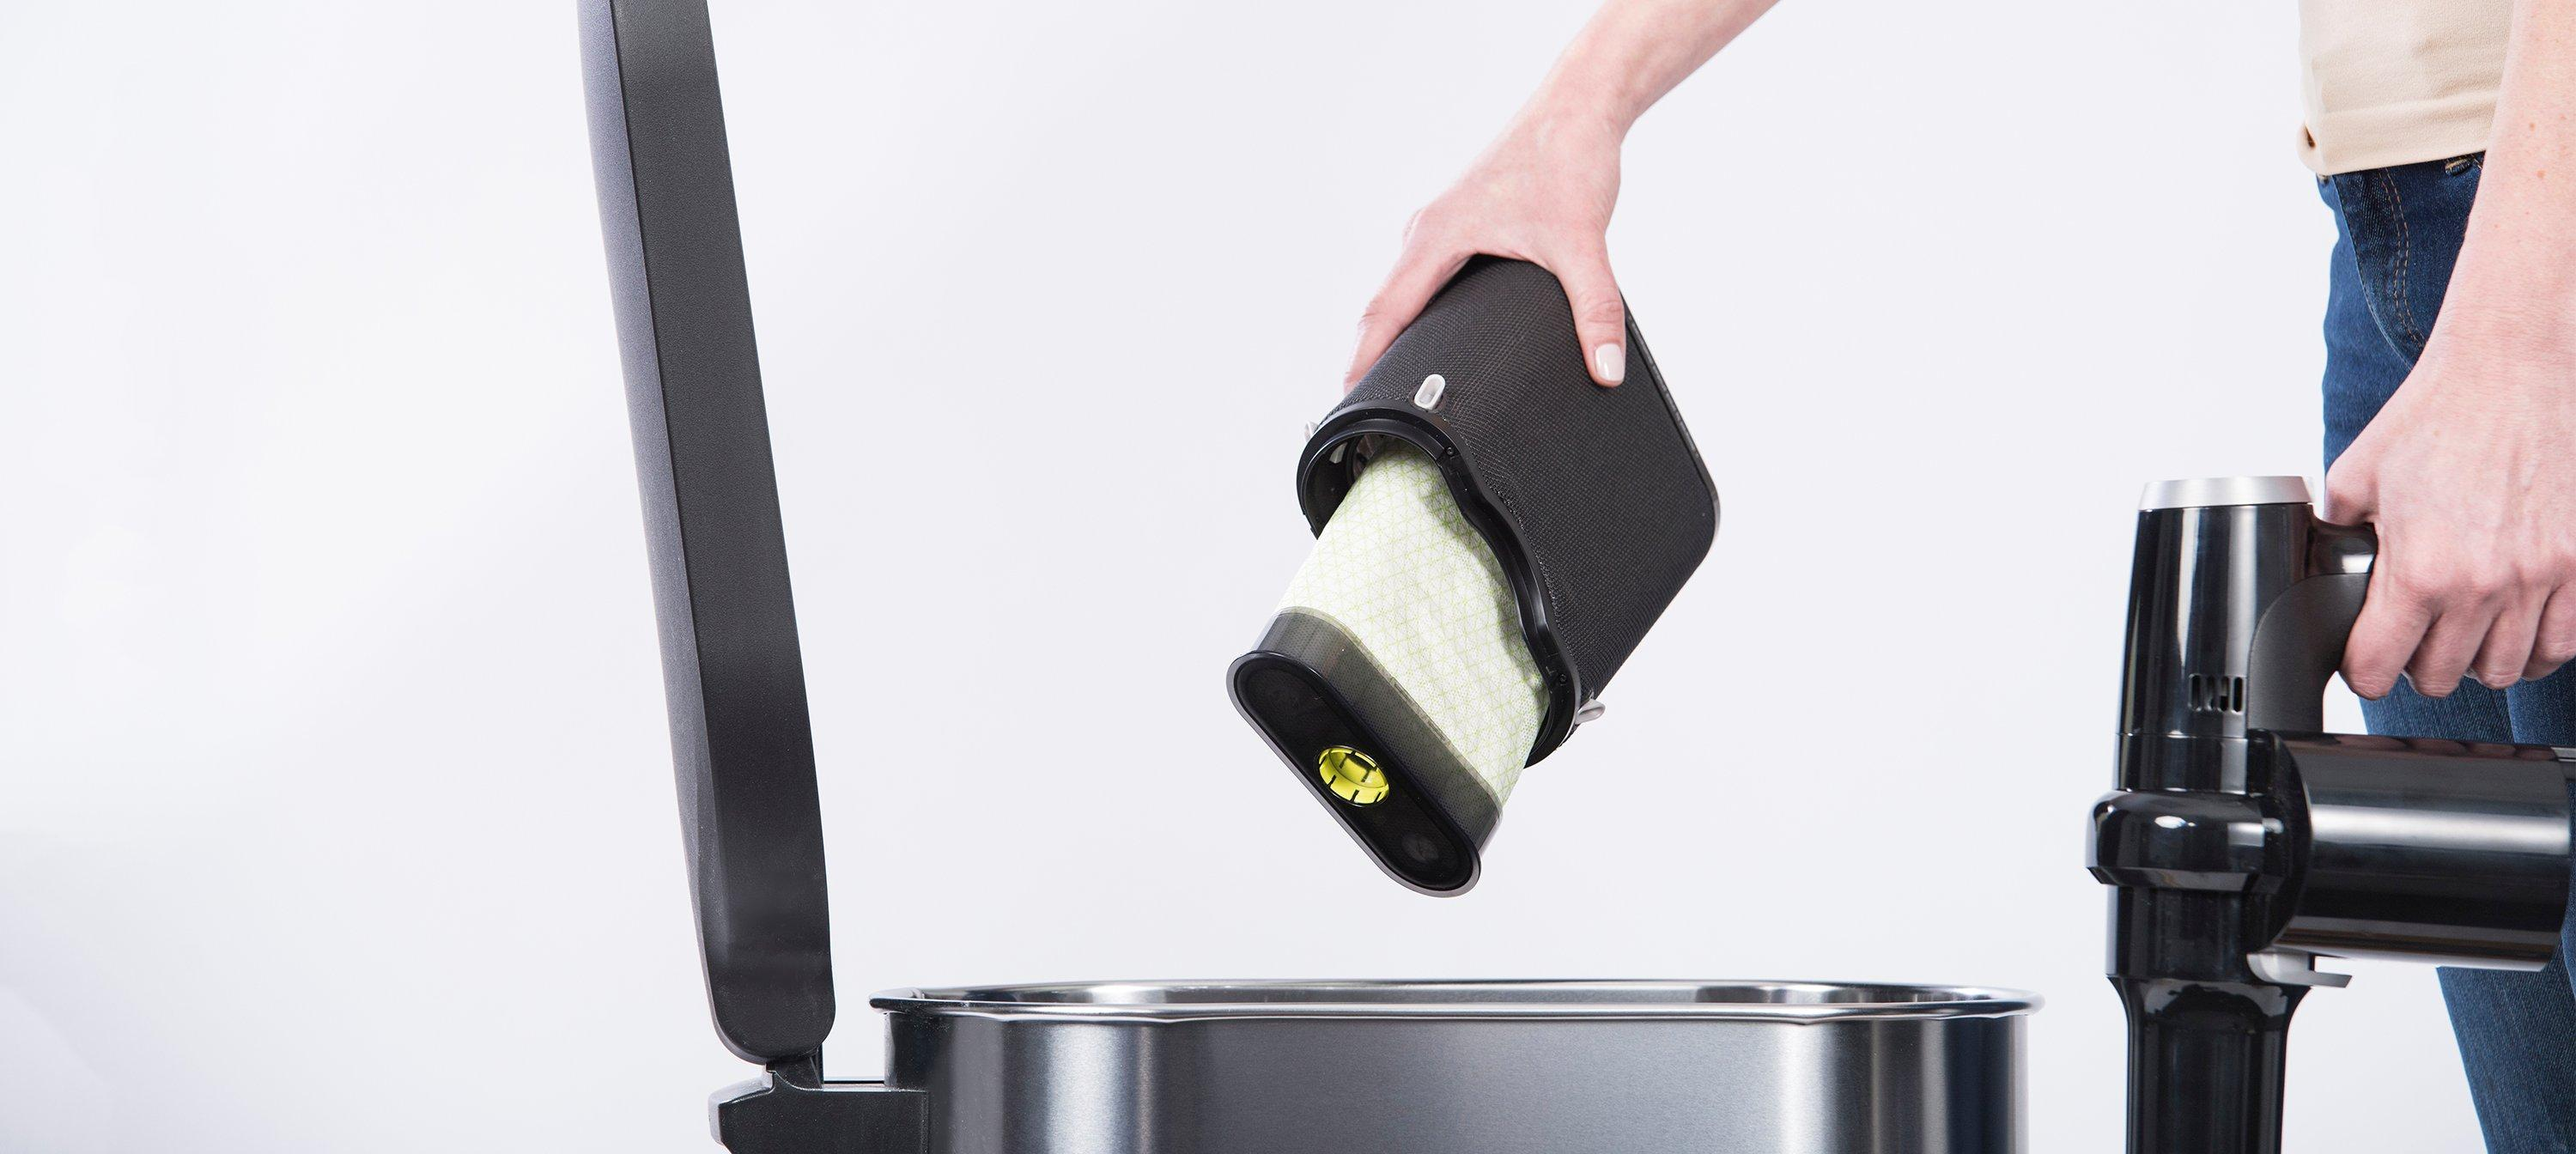 Once full, the self-sealing POD can be disposed of with no cloud of dust.